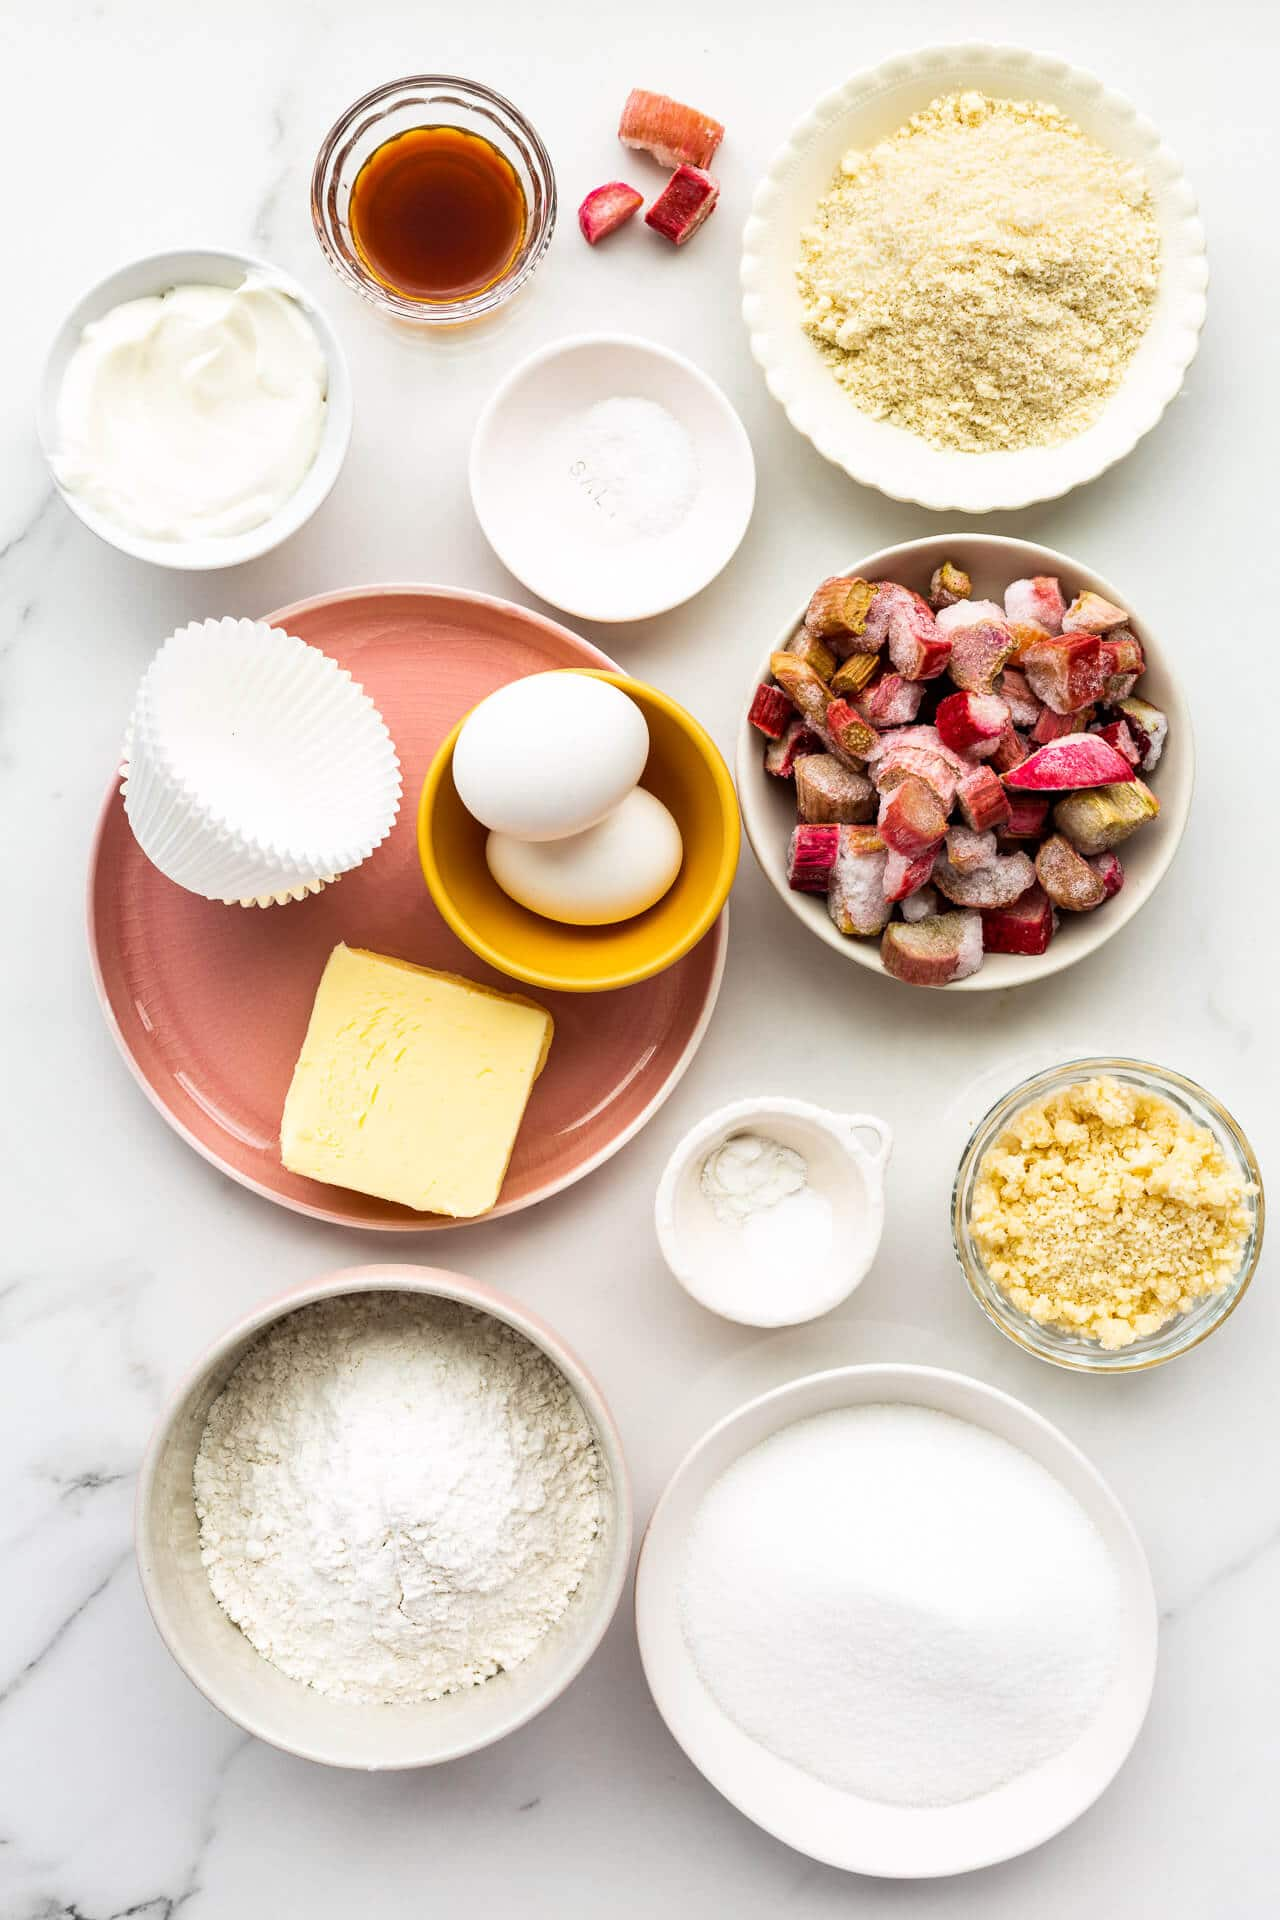 Ingredients for rhubarb streusel muffins